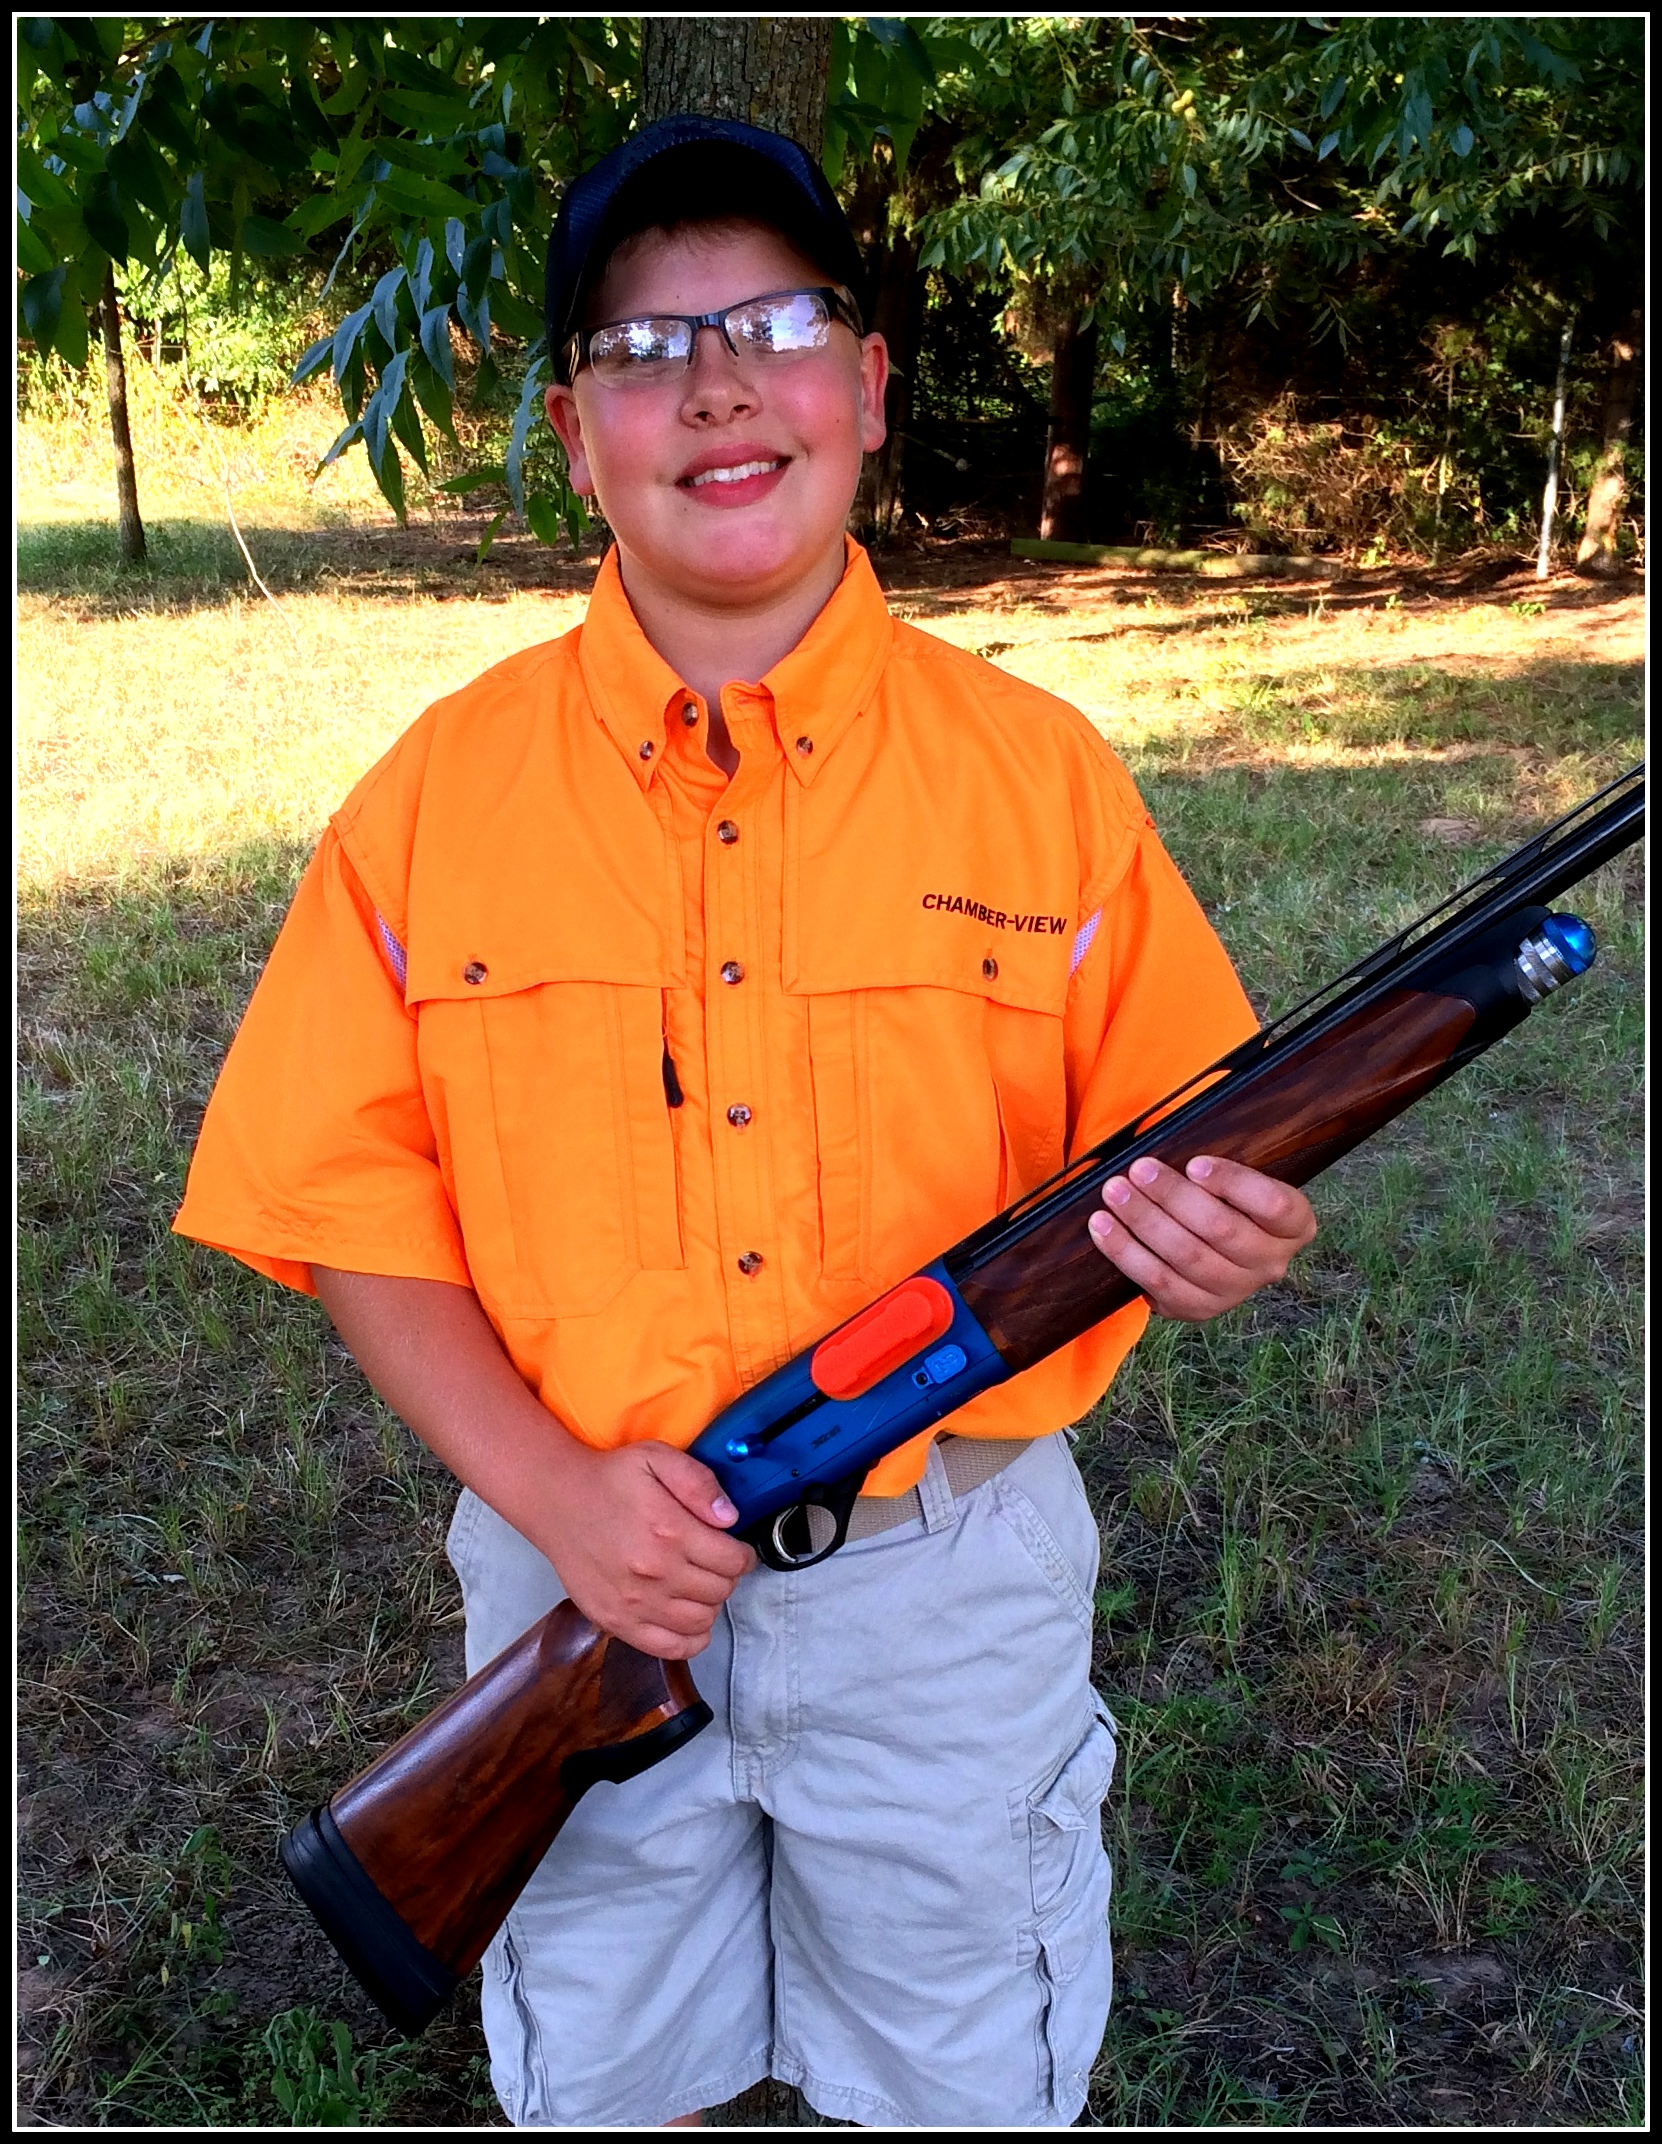 Chamber-View® Sponsors Youth Target Shooter Ryan Fitch for 2014 Season